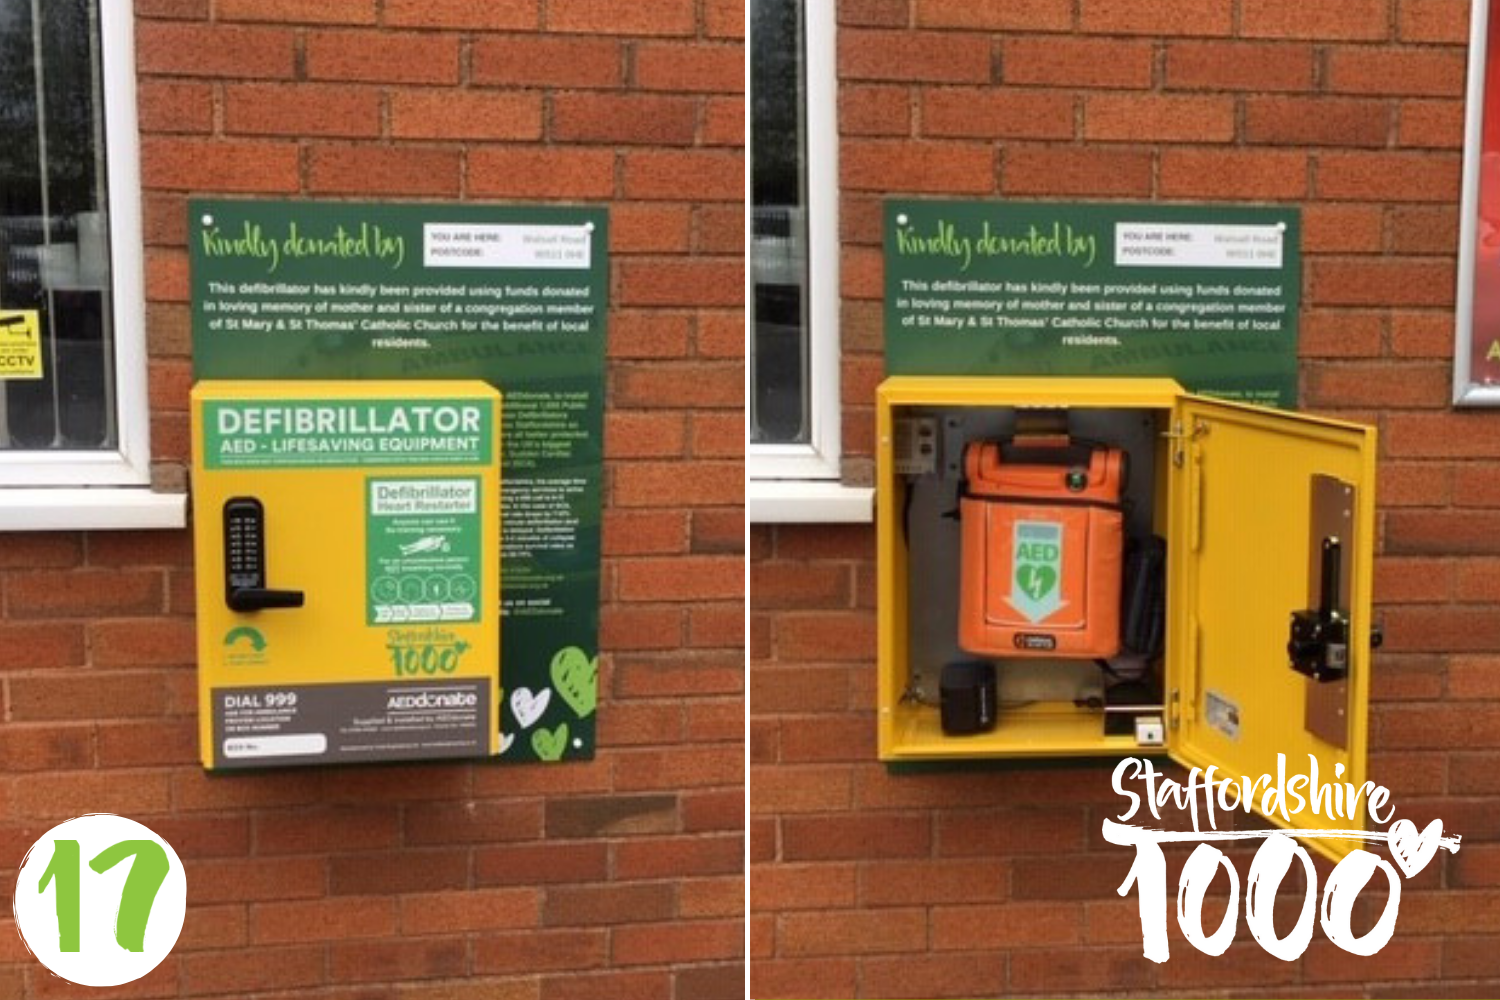 Defibrillator donated in loving memory